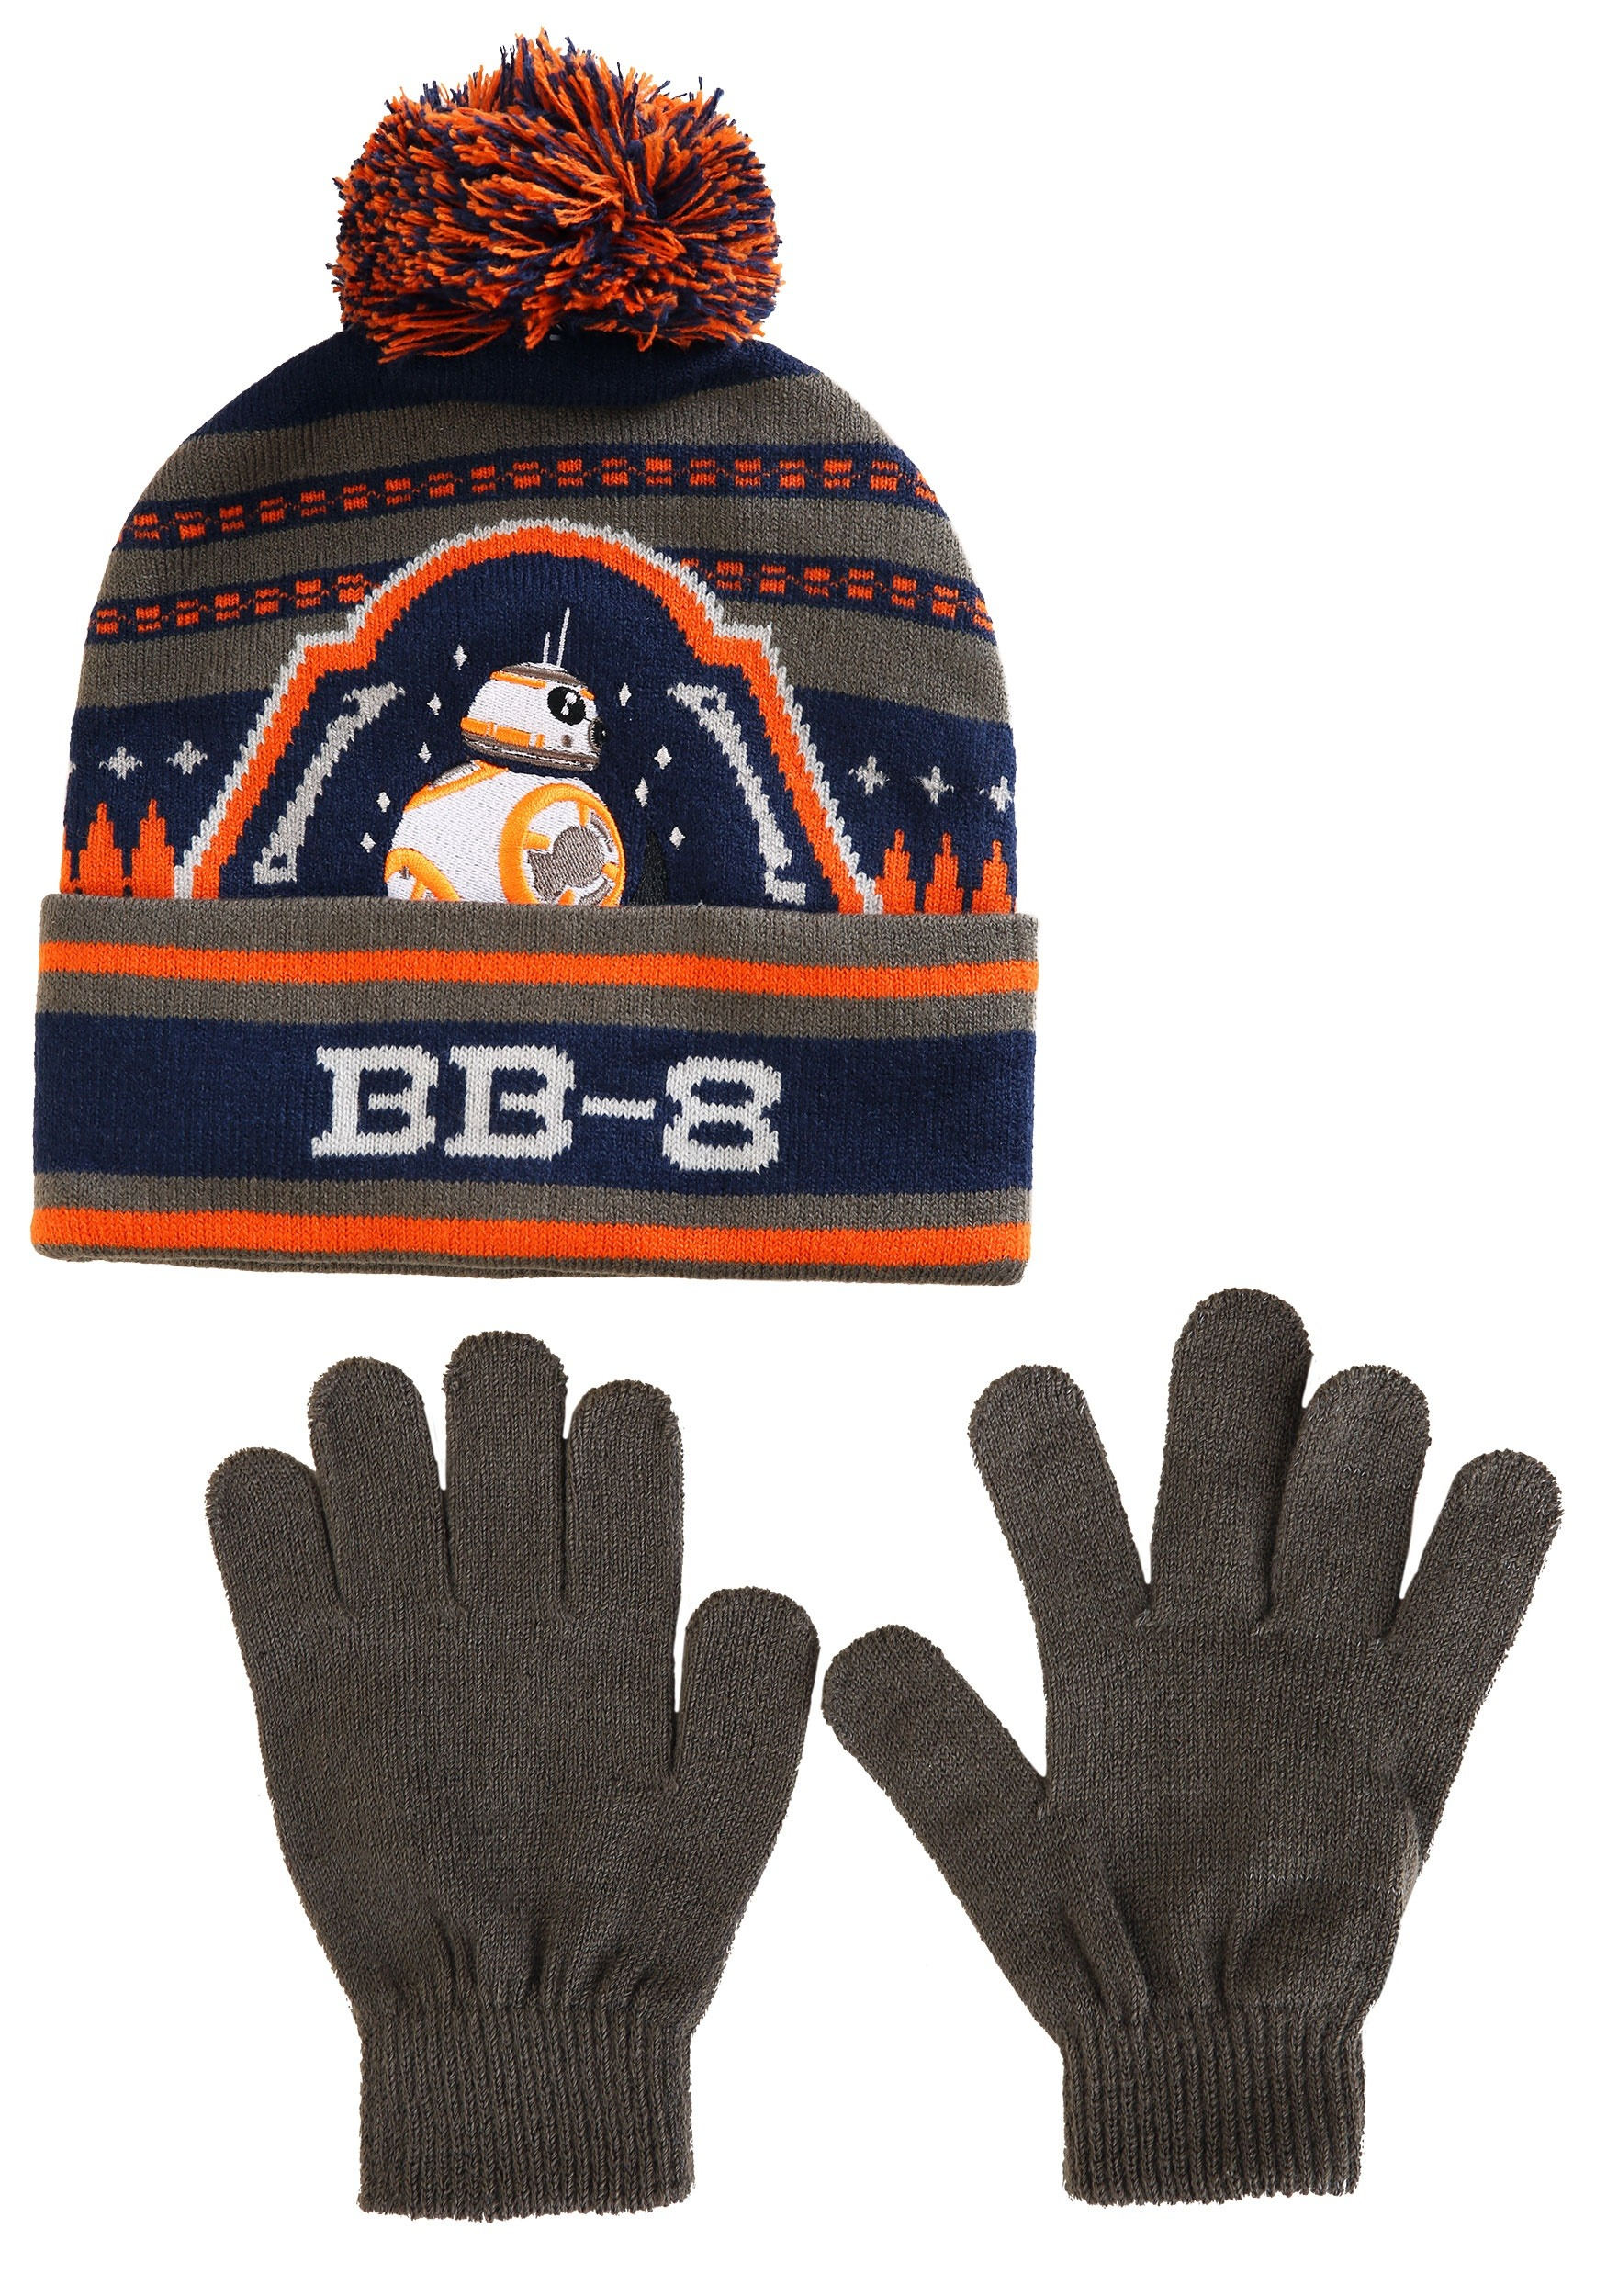 ... norway star wars bb8 boys knit ski hat and gloves f6a41 e16cd 22f7e9d938e6